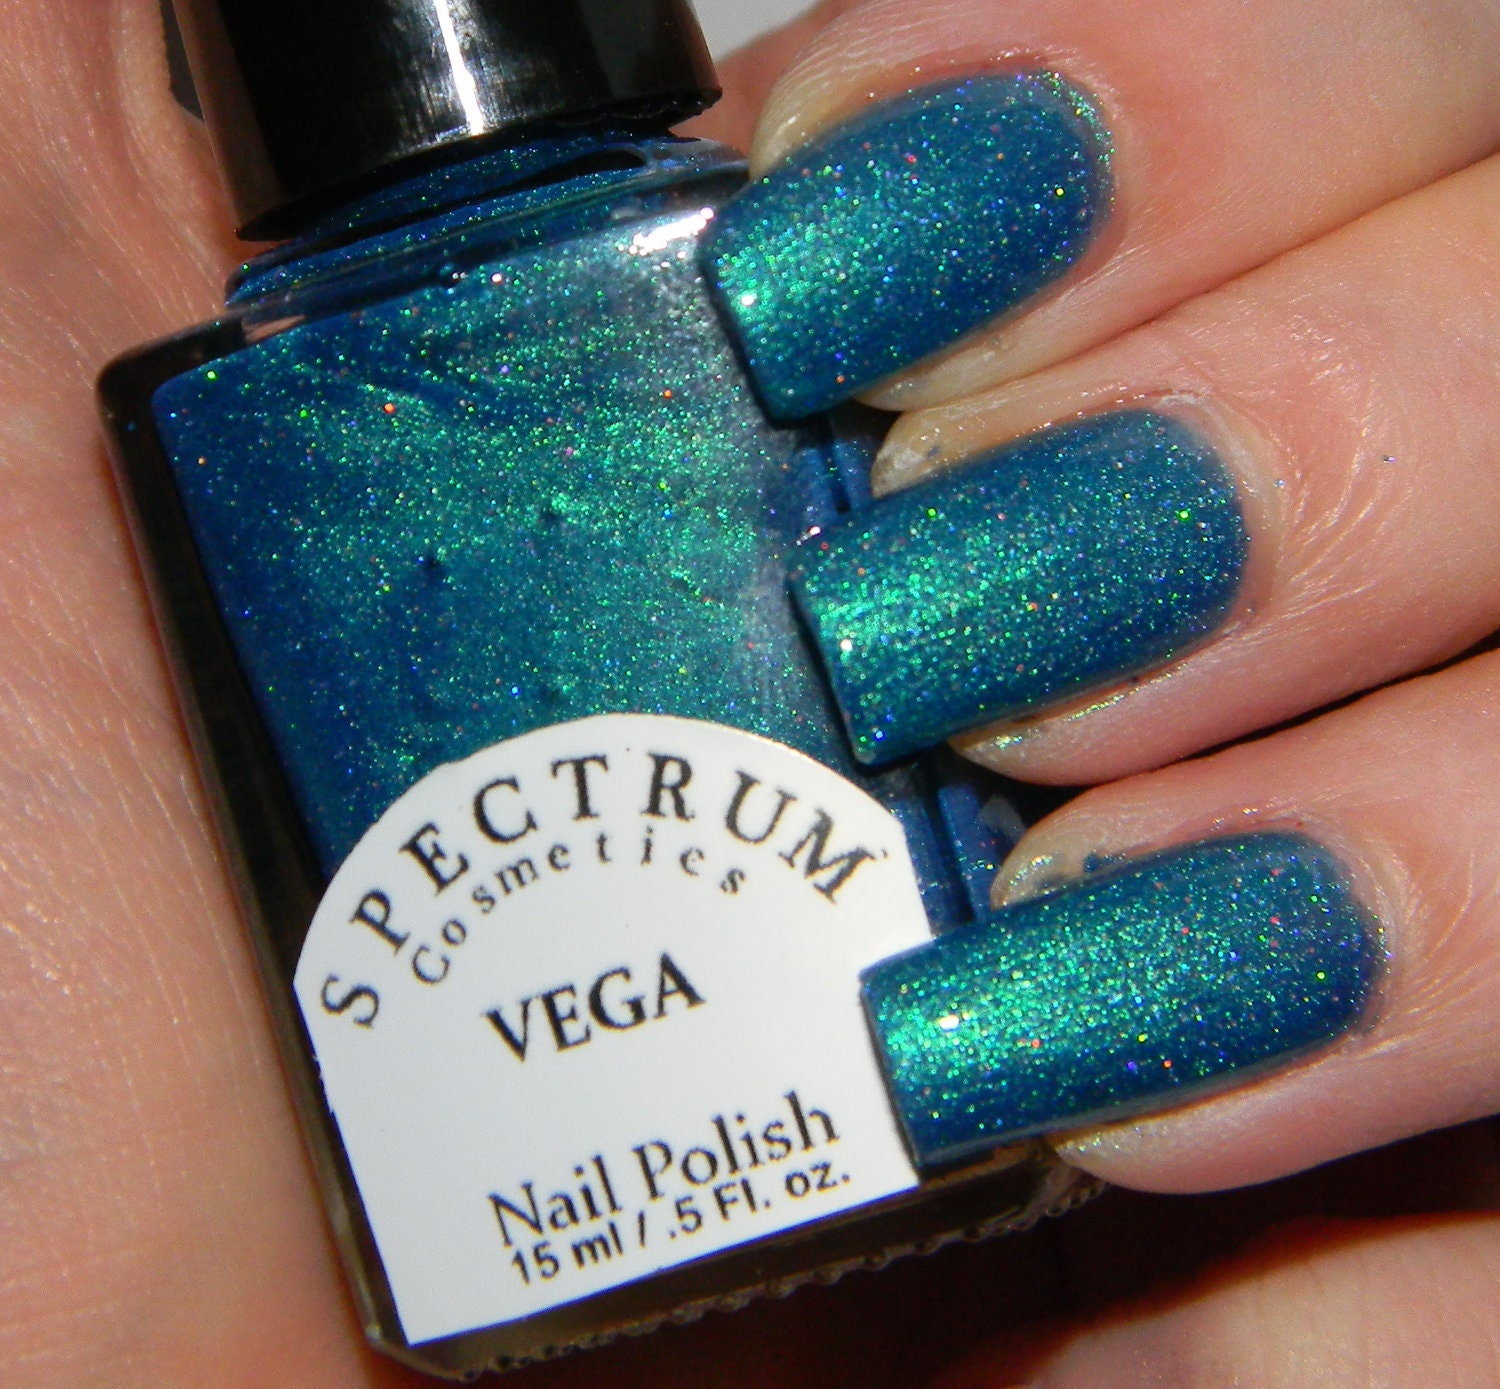 Teal Duochrome with Holographic Glitter nail Polish VEGA